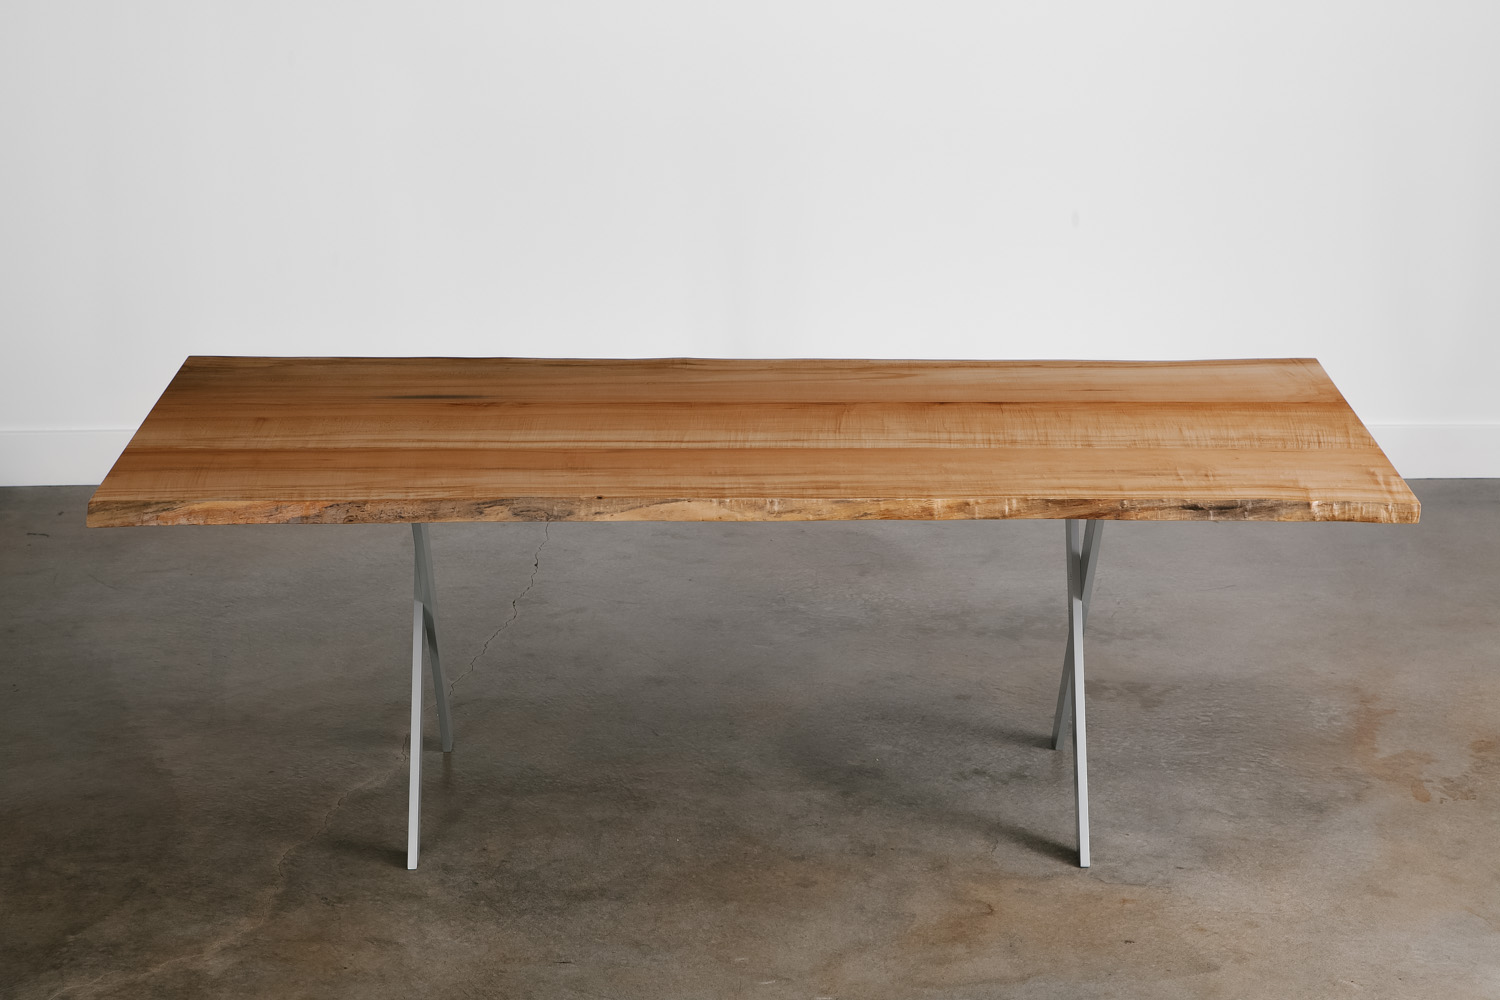 Dining table with live tree edge and silver legs